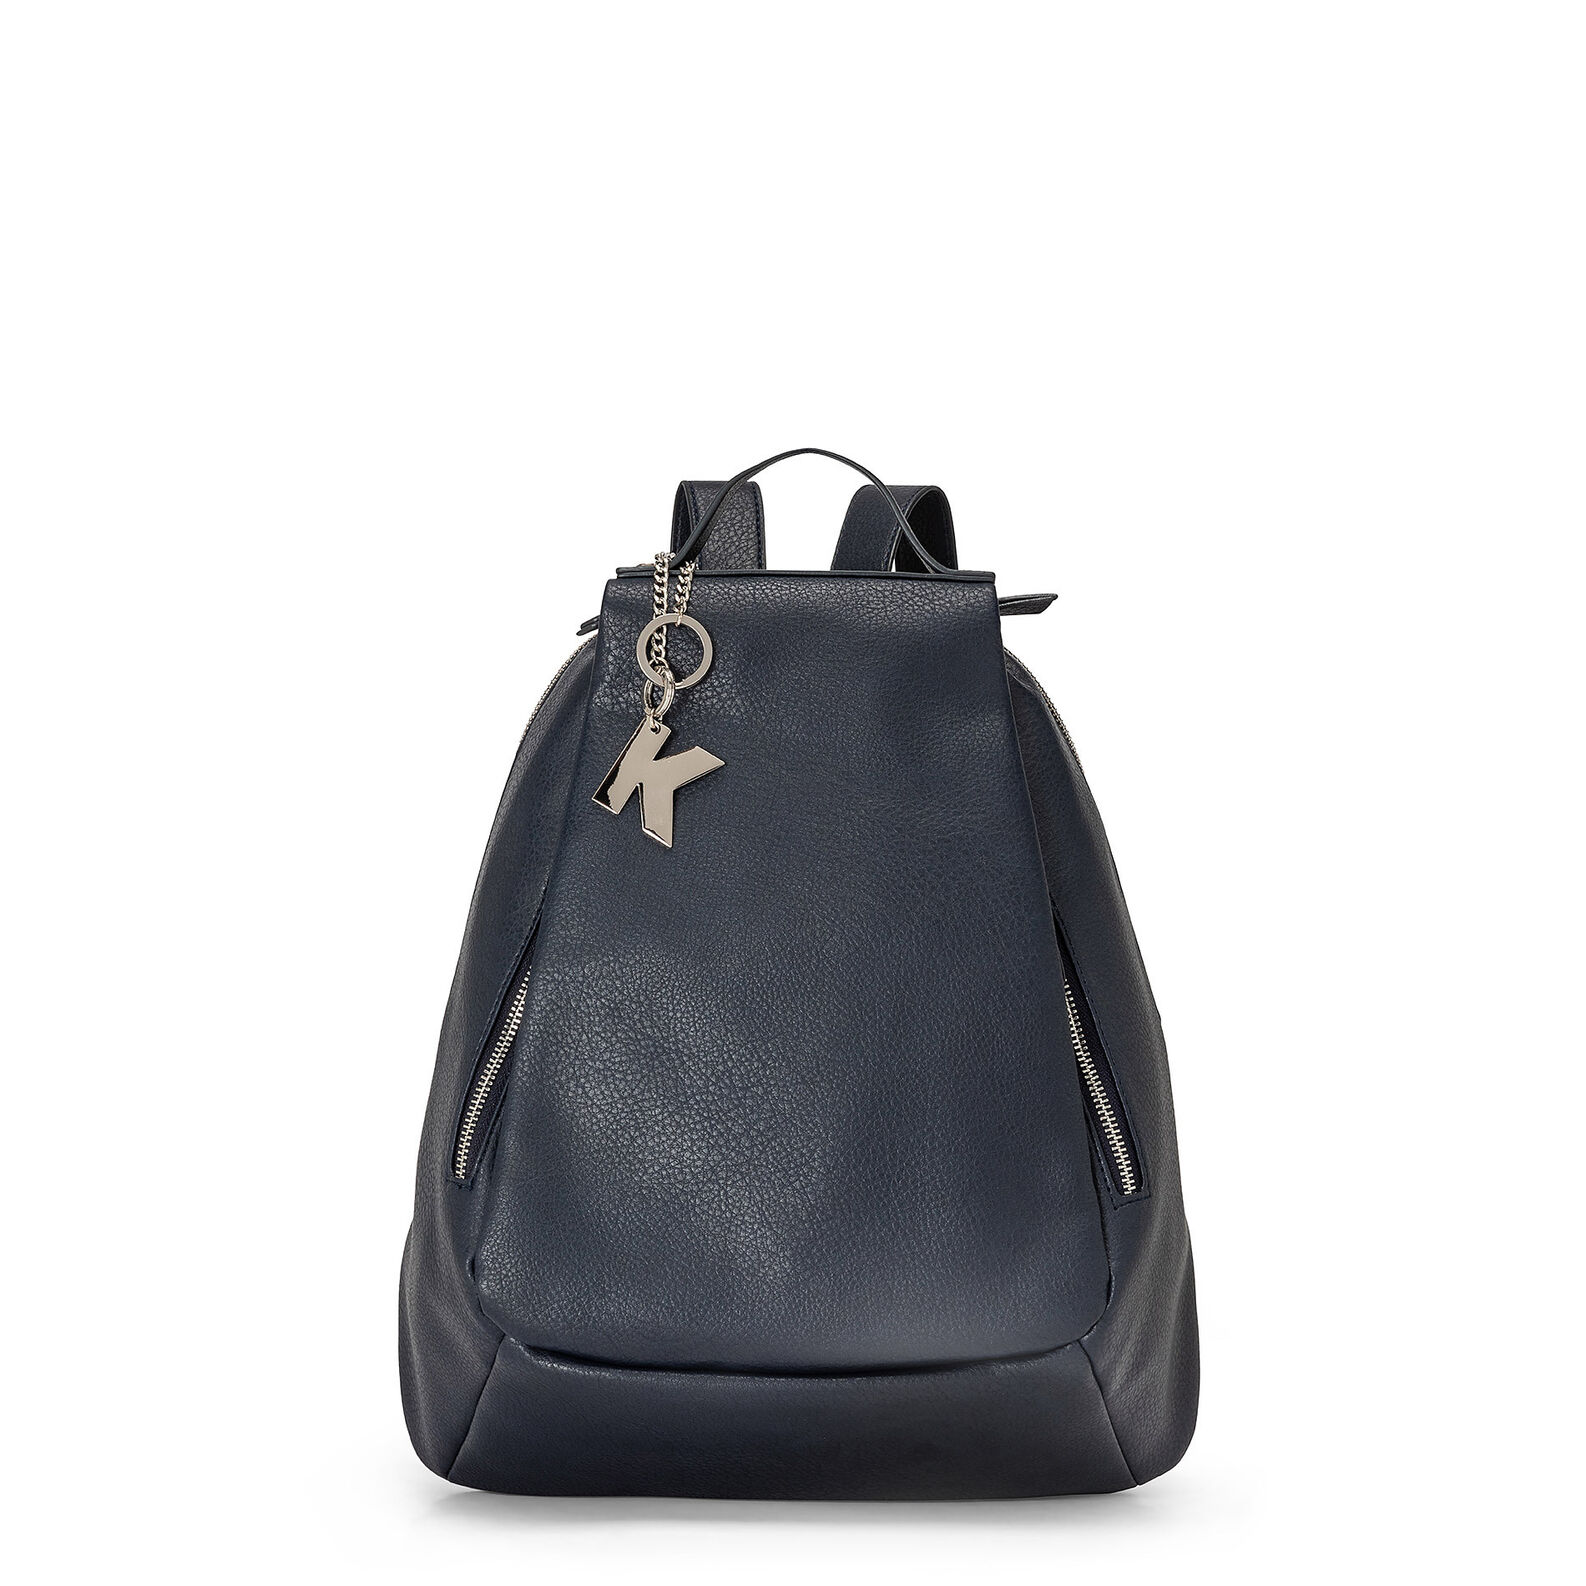 Koan backpack with pockets